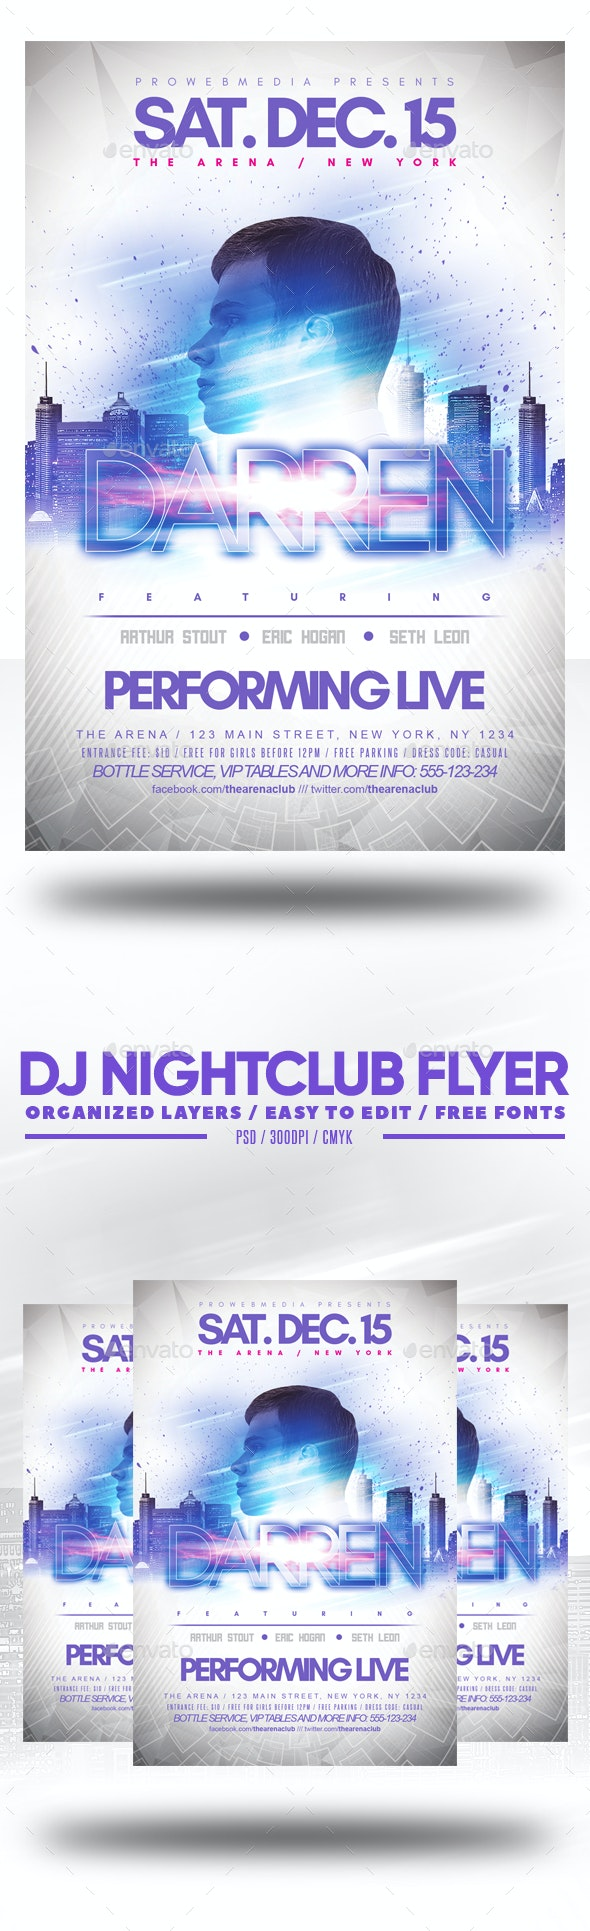 DJ Nightclub Flyer - Clubs & Parties Events